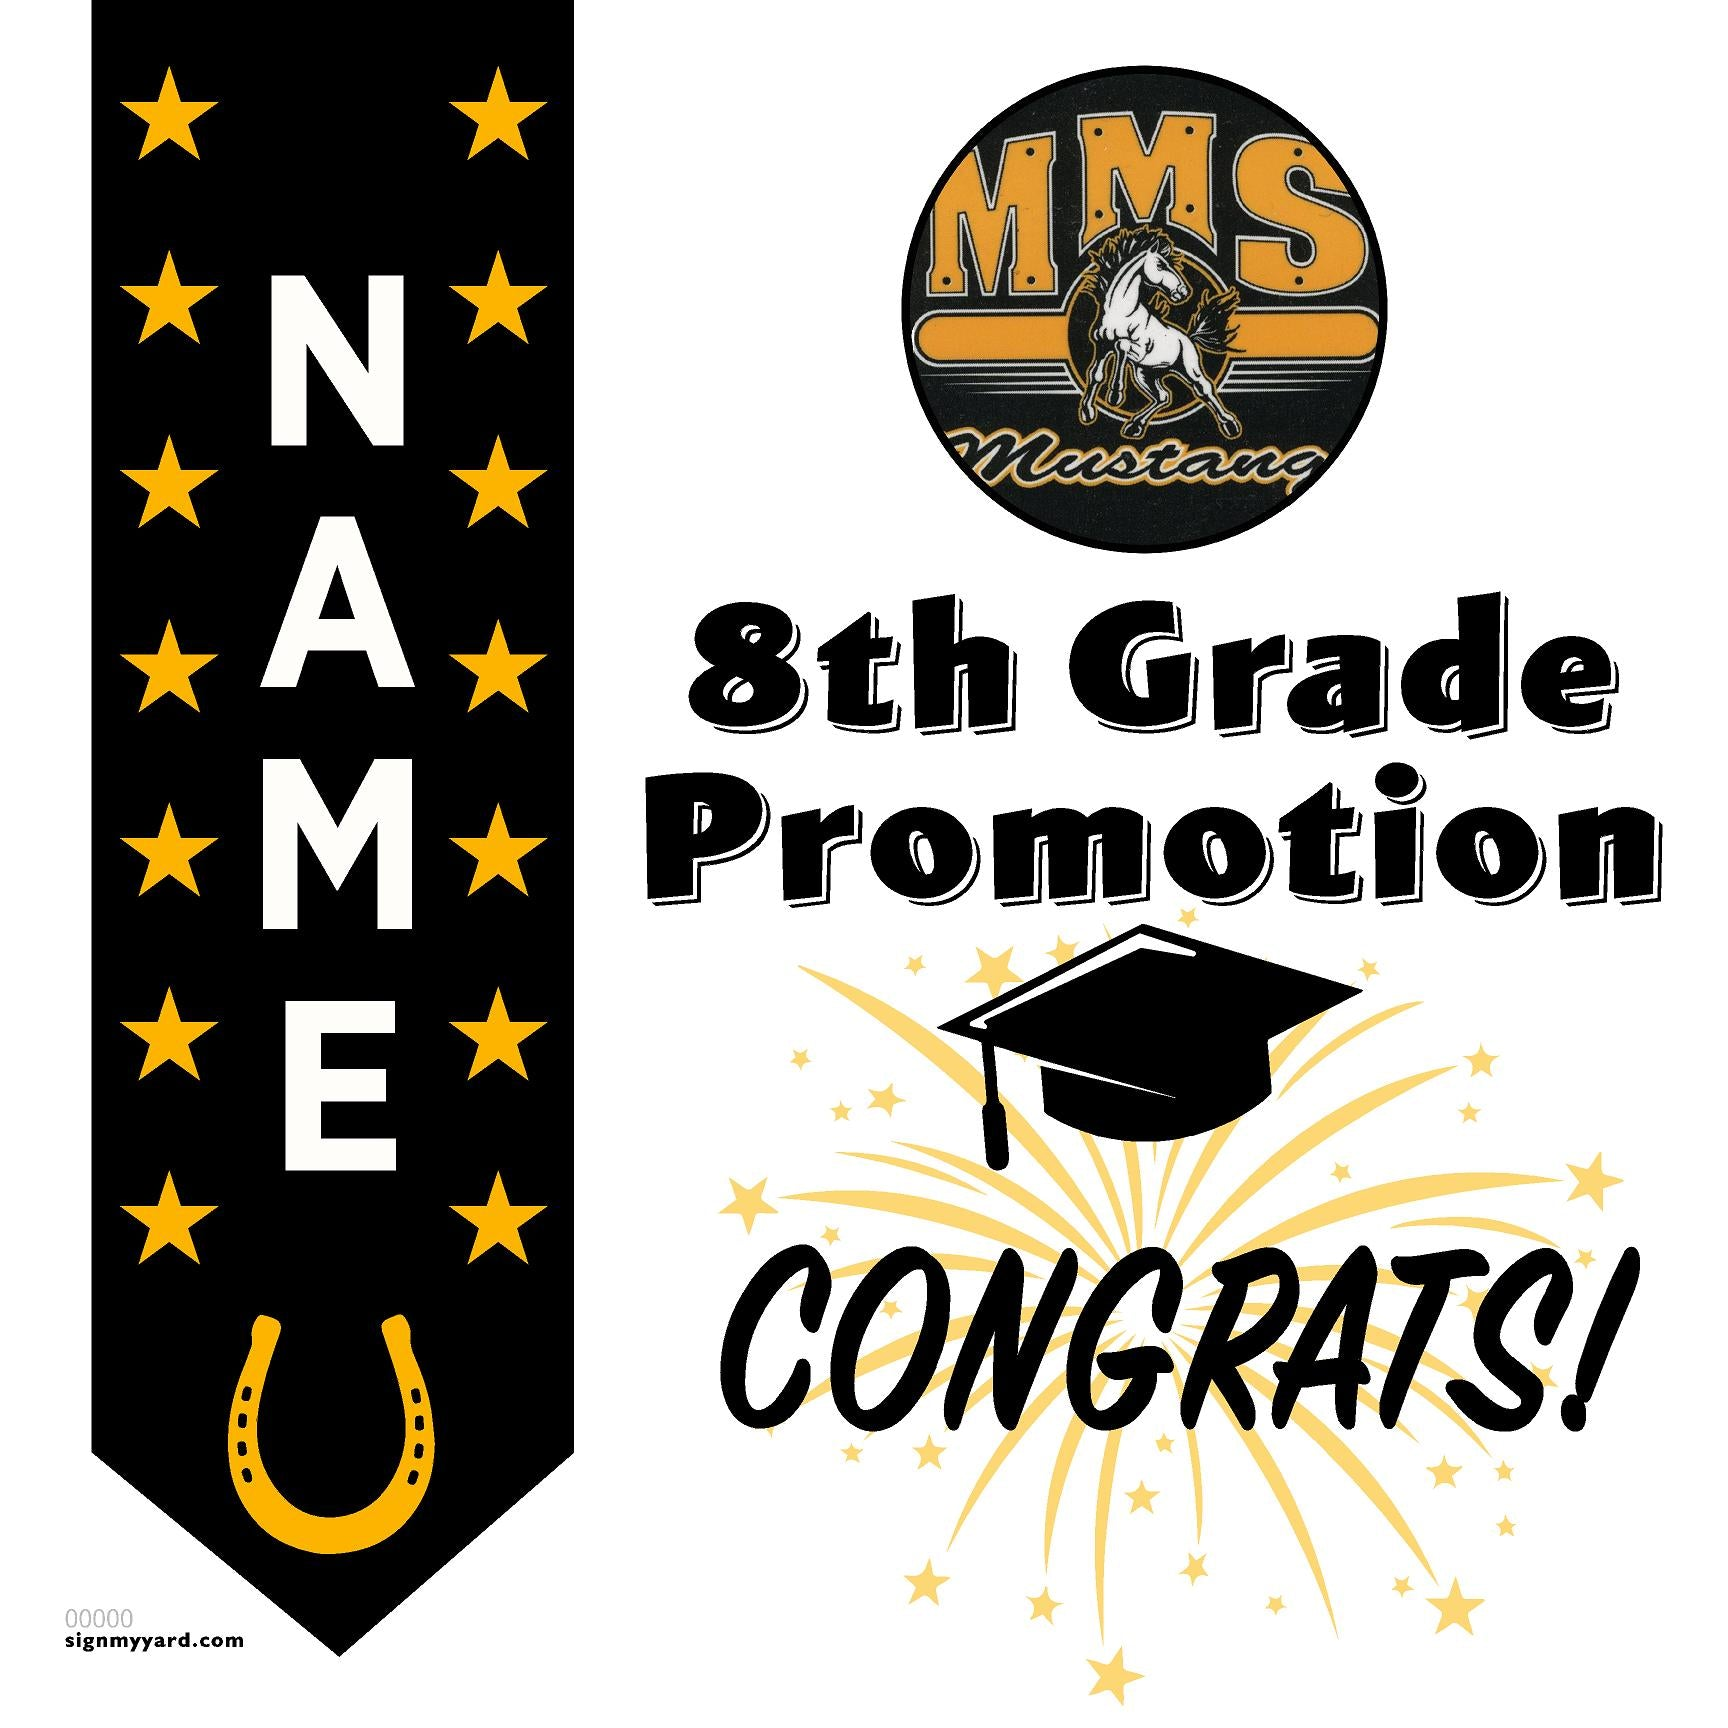 Moreland Middle School 8th Grade Promotion 24x24 #shineon2024 Yard Sign (Option B)